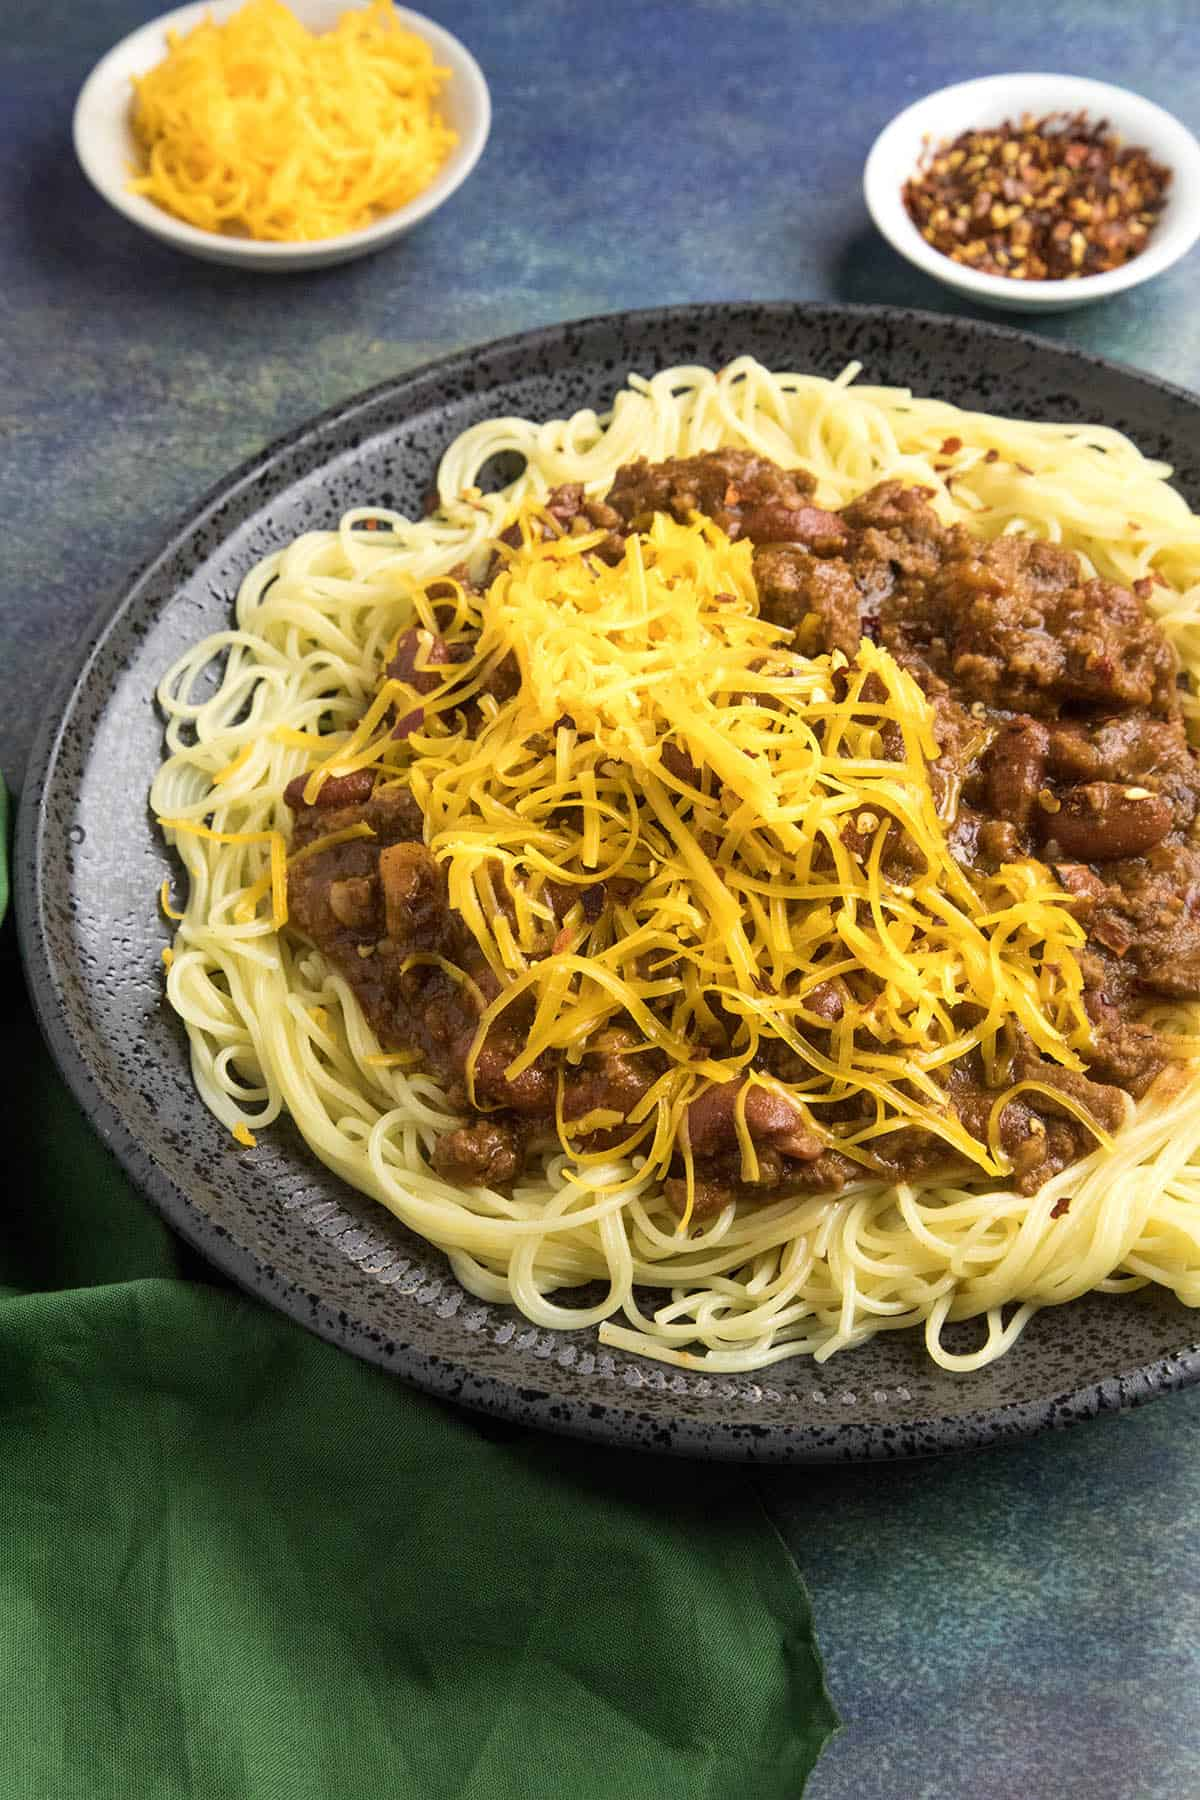 Cincinnati Chili on a plate, ready to eat